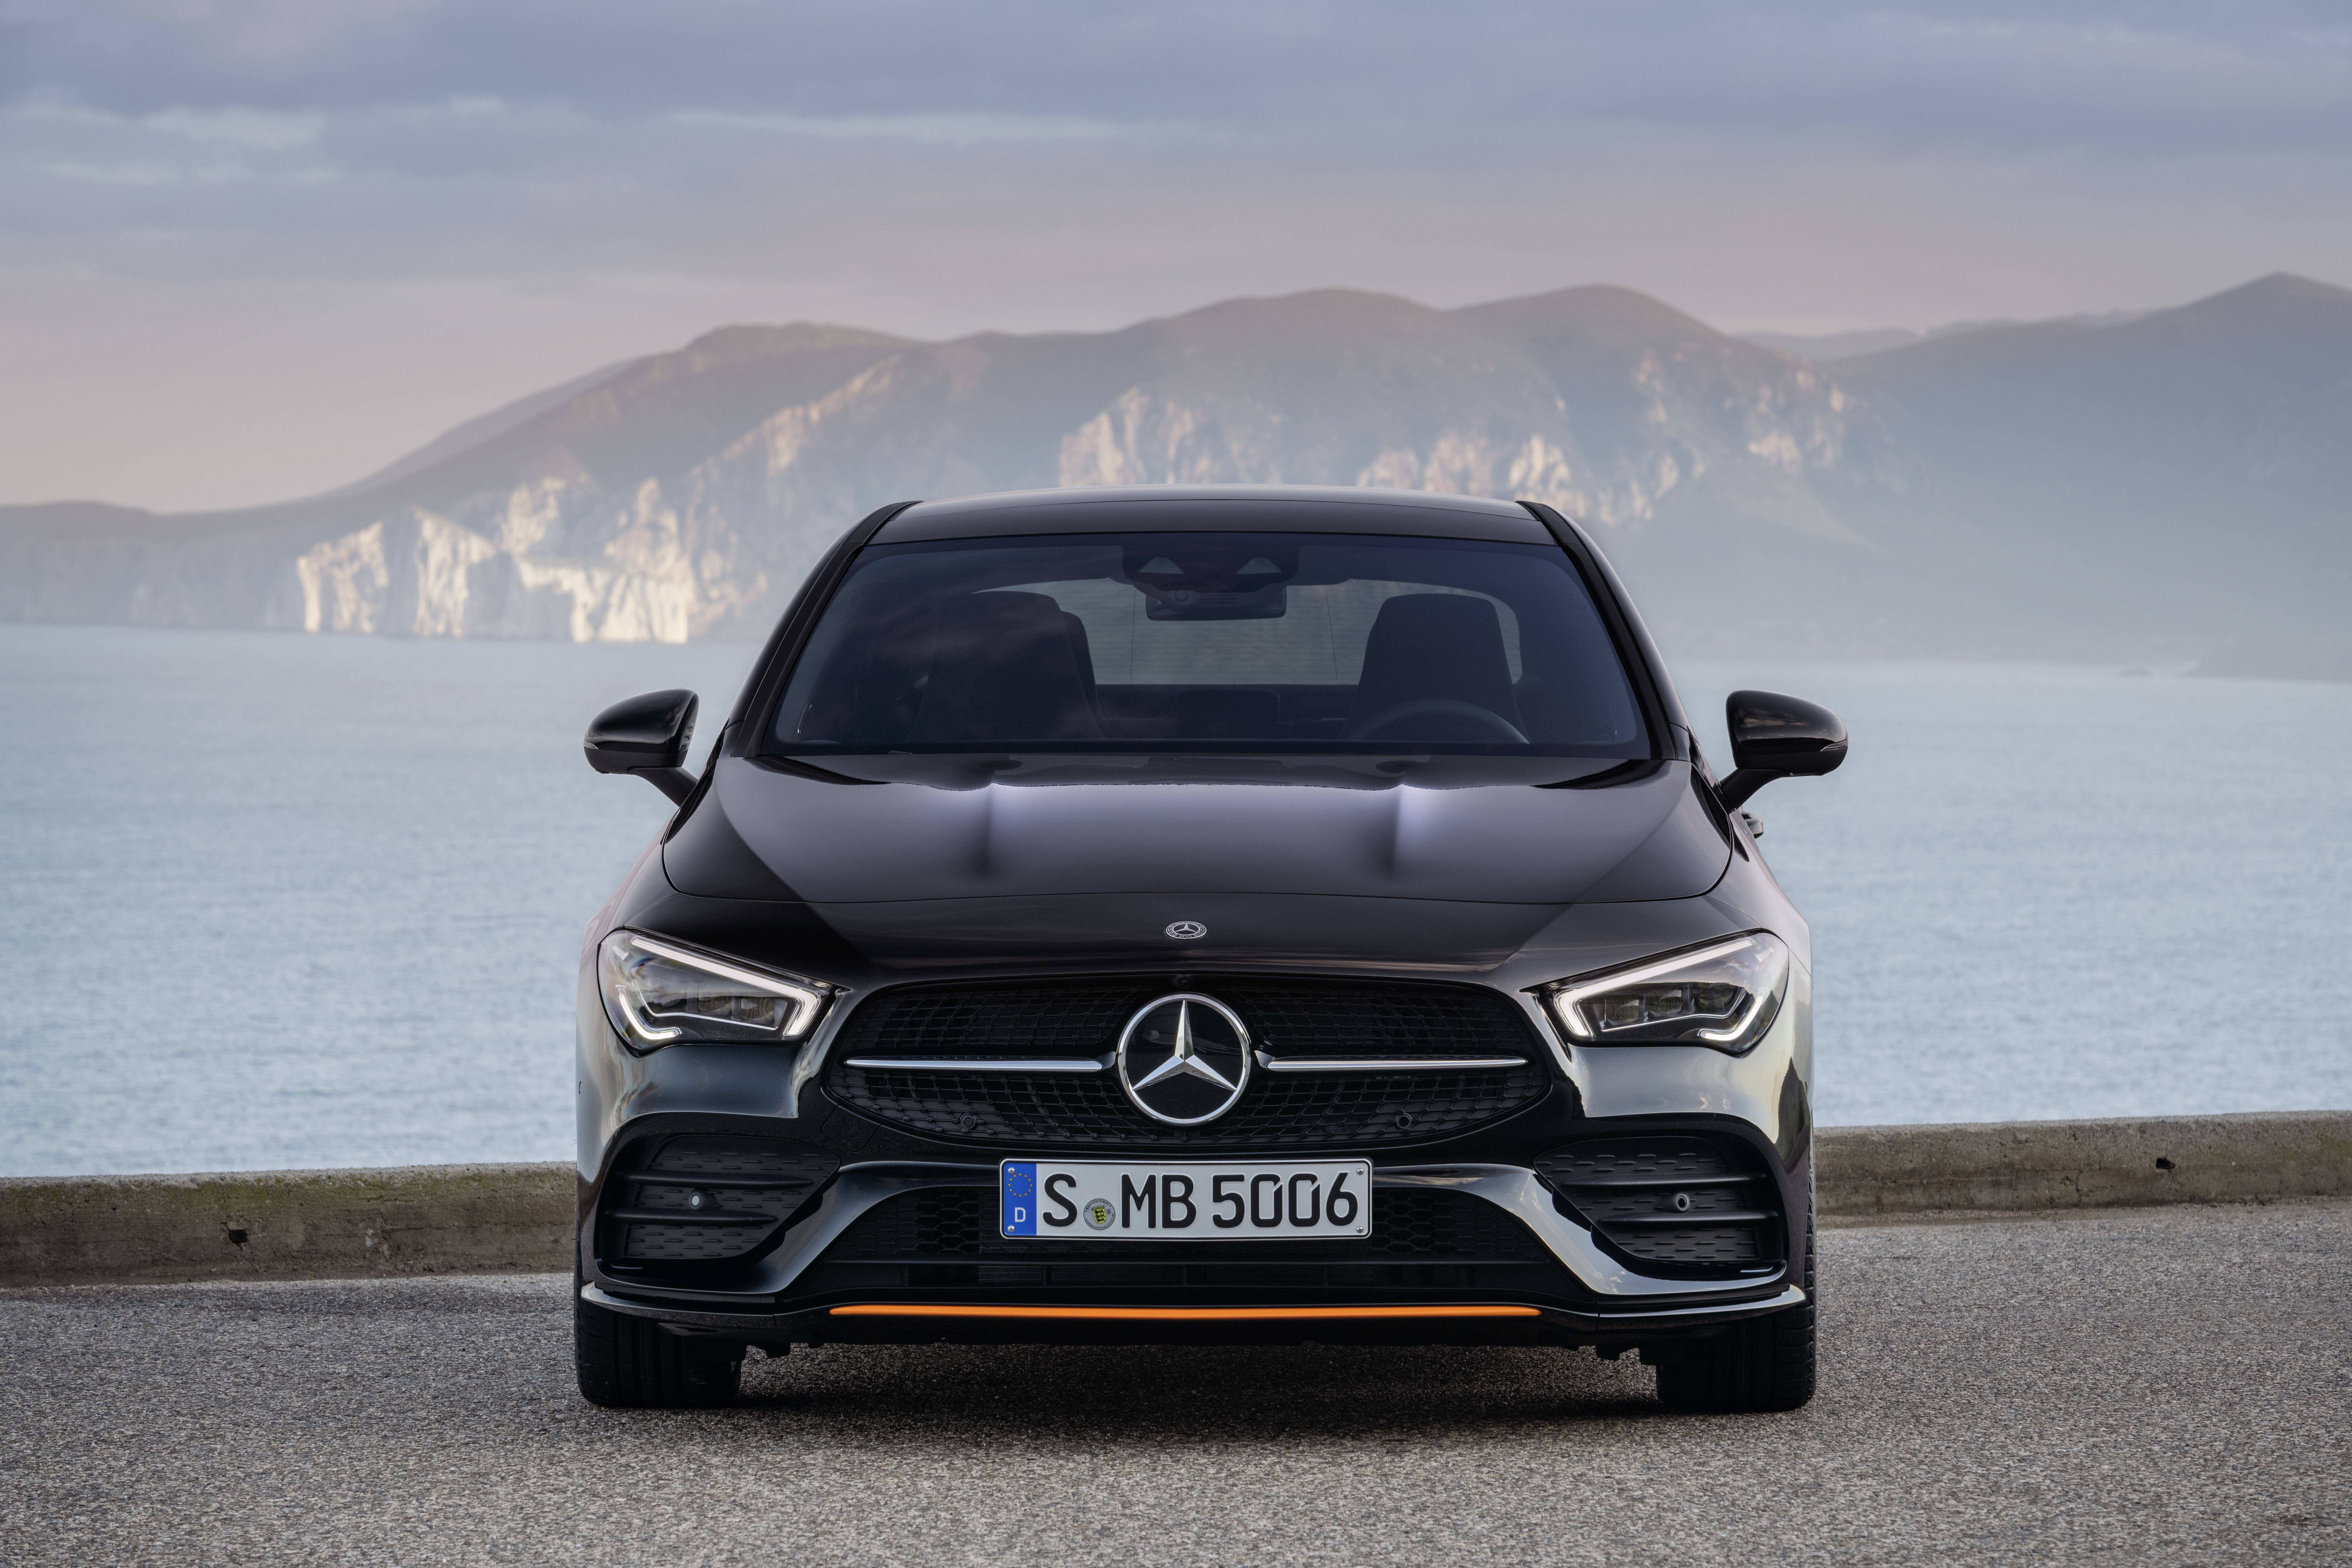 85 All New Mercedes Cla 2019 Release Date Prices